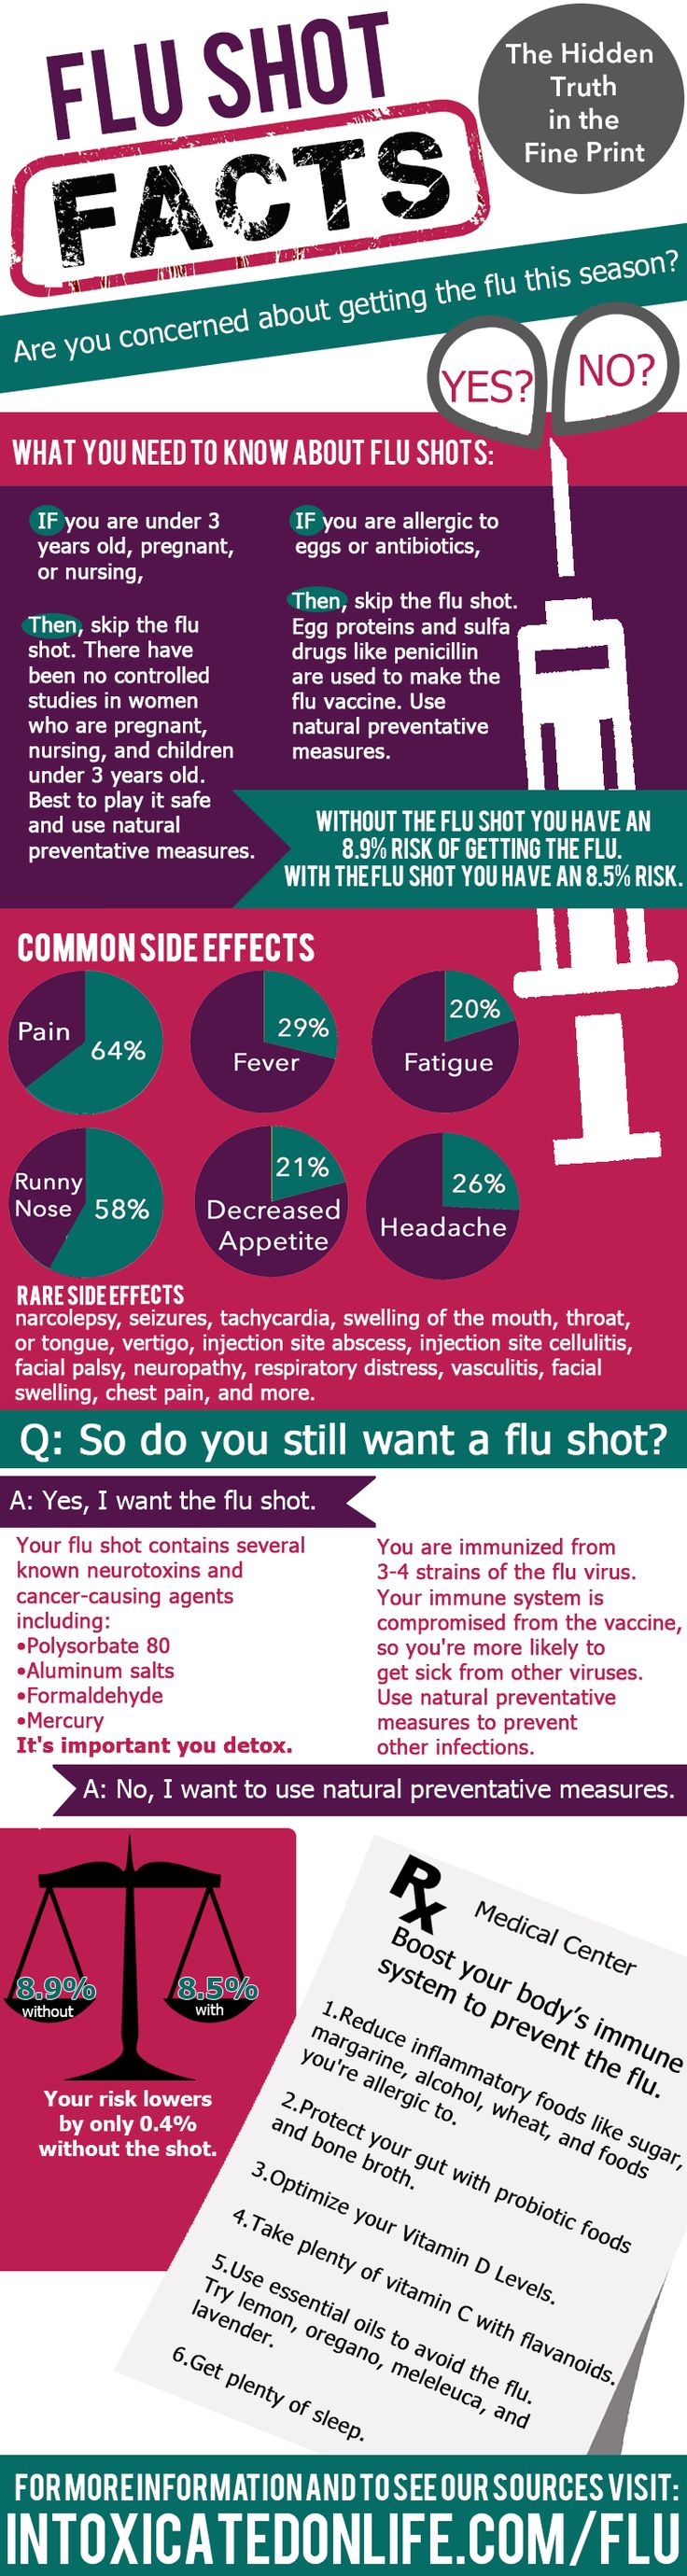 Flu Shots: Facts and Fiction (boost your immune system naturally - adjustments, super foods, exercise, sleep)